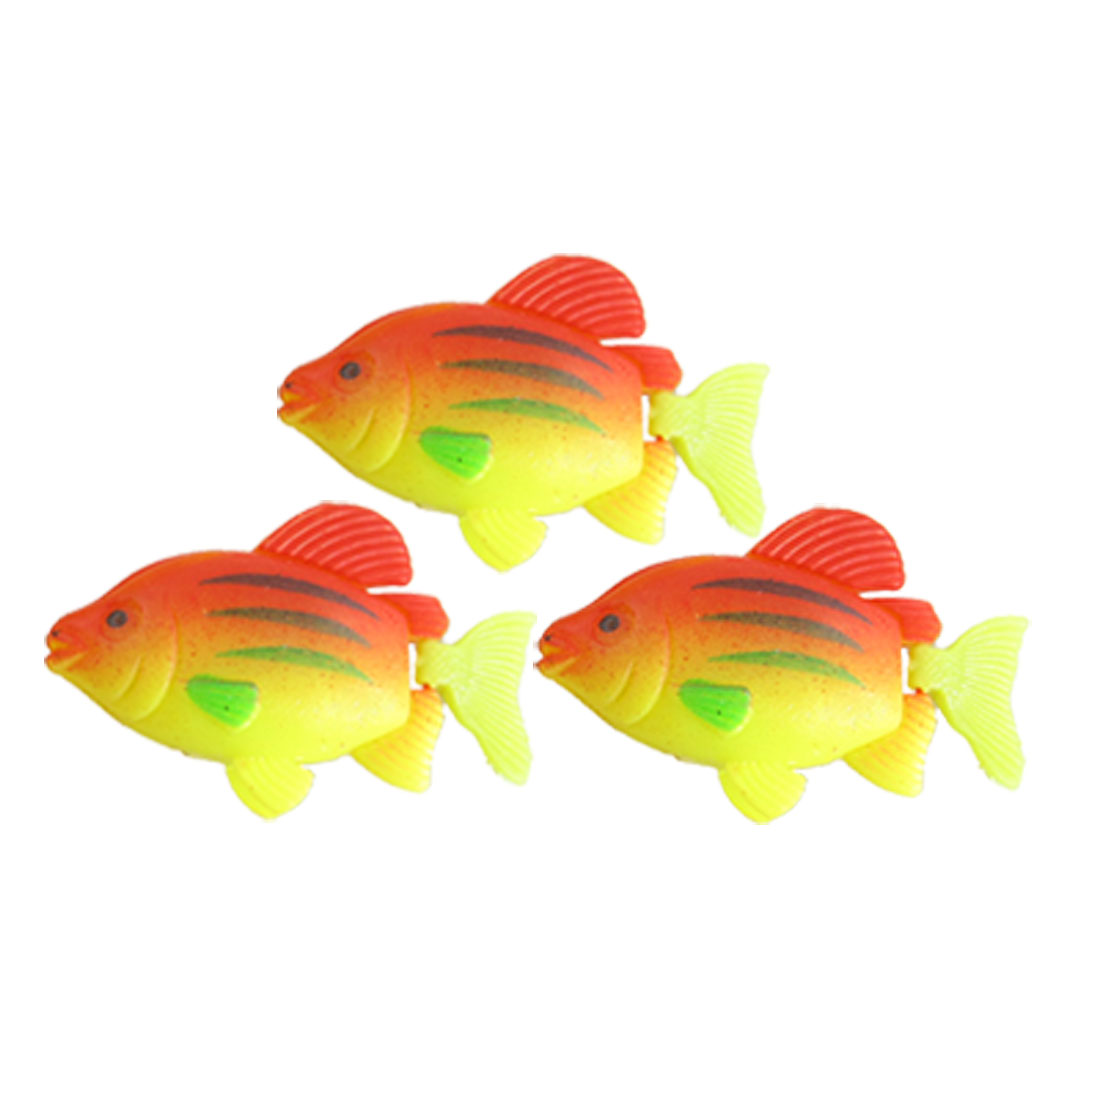 3 Pcs Three Colors Plastic Floating Fish Aquarium Decoration